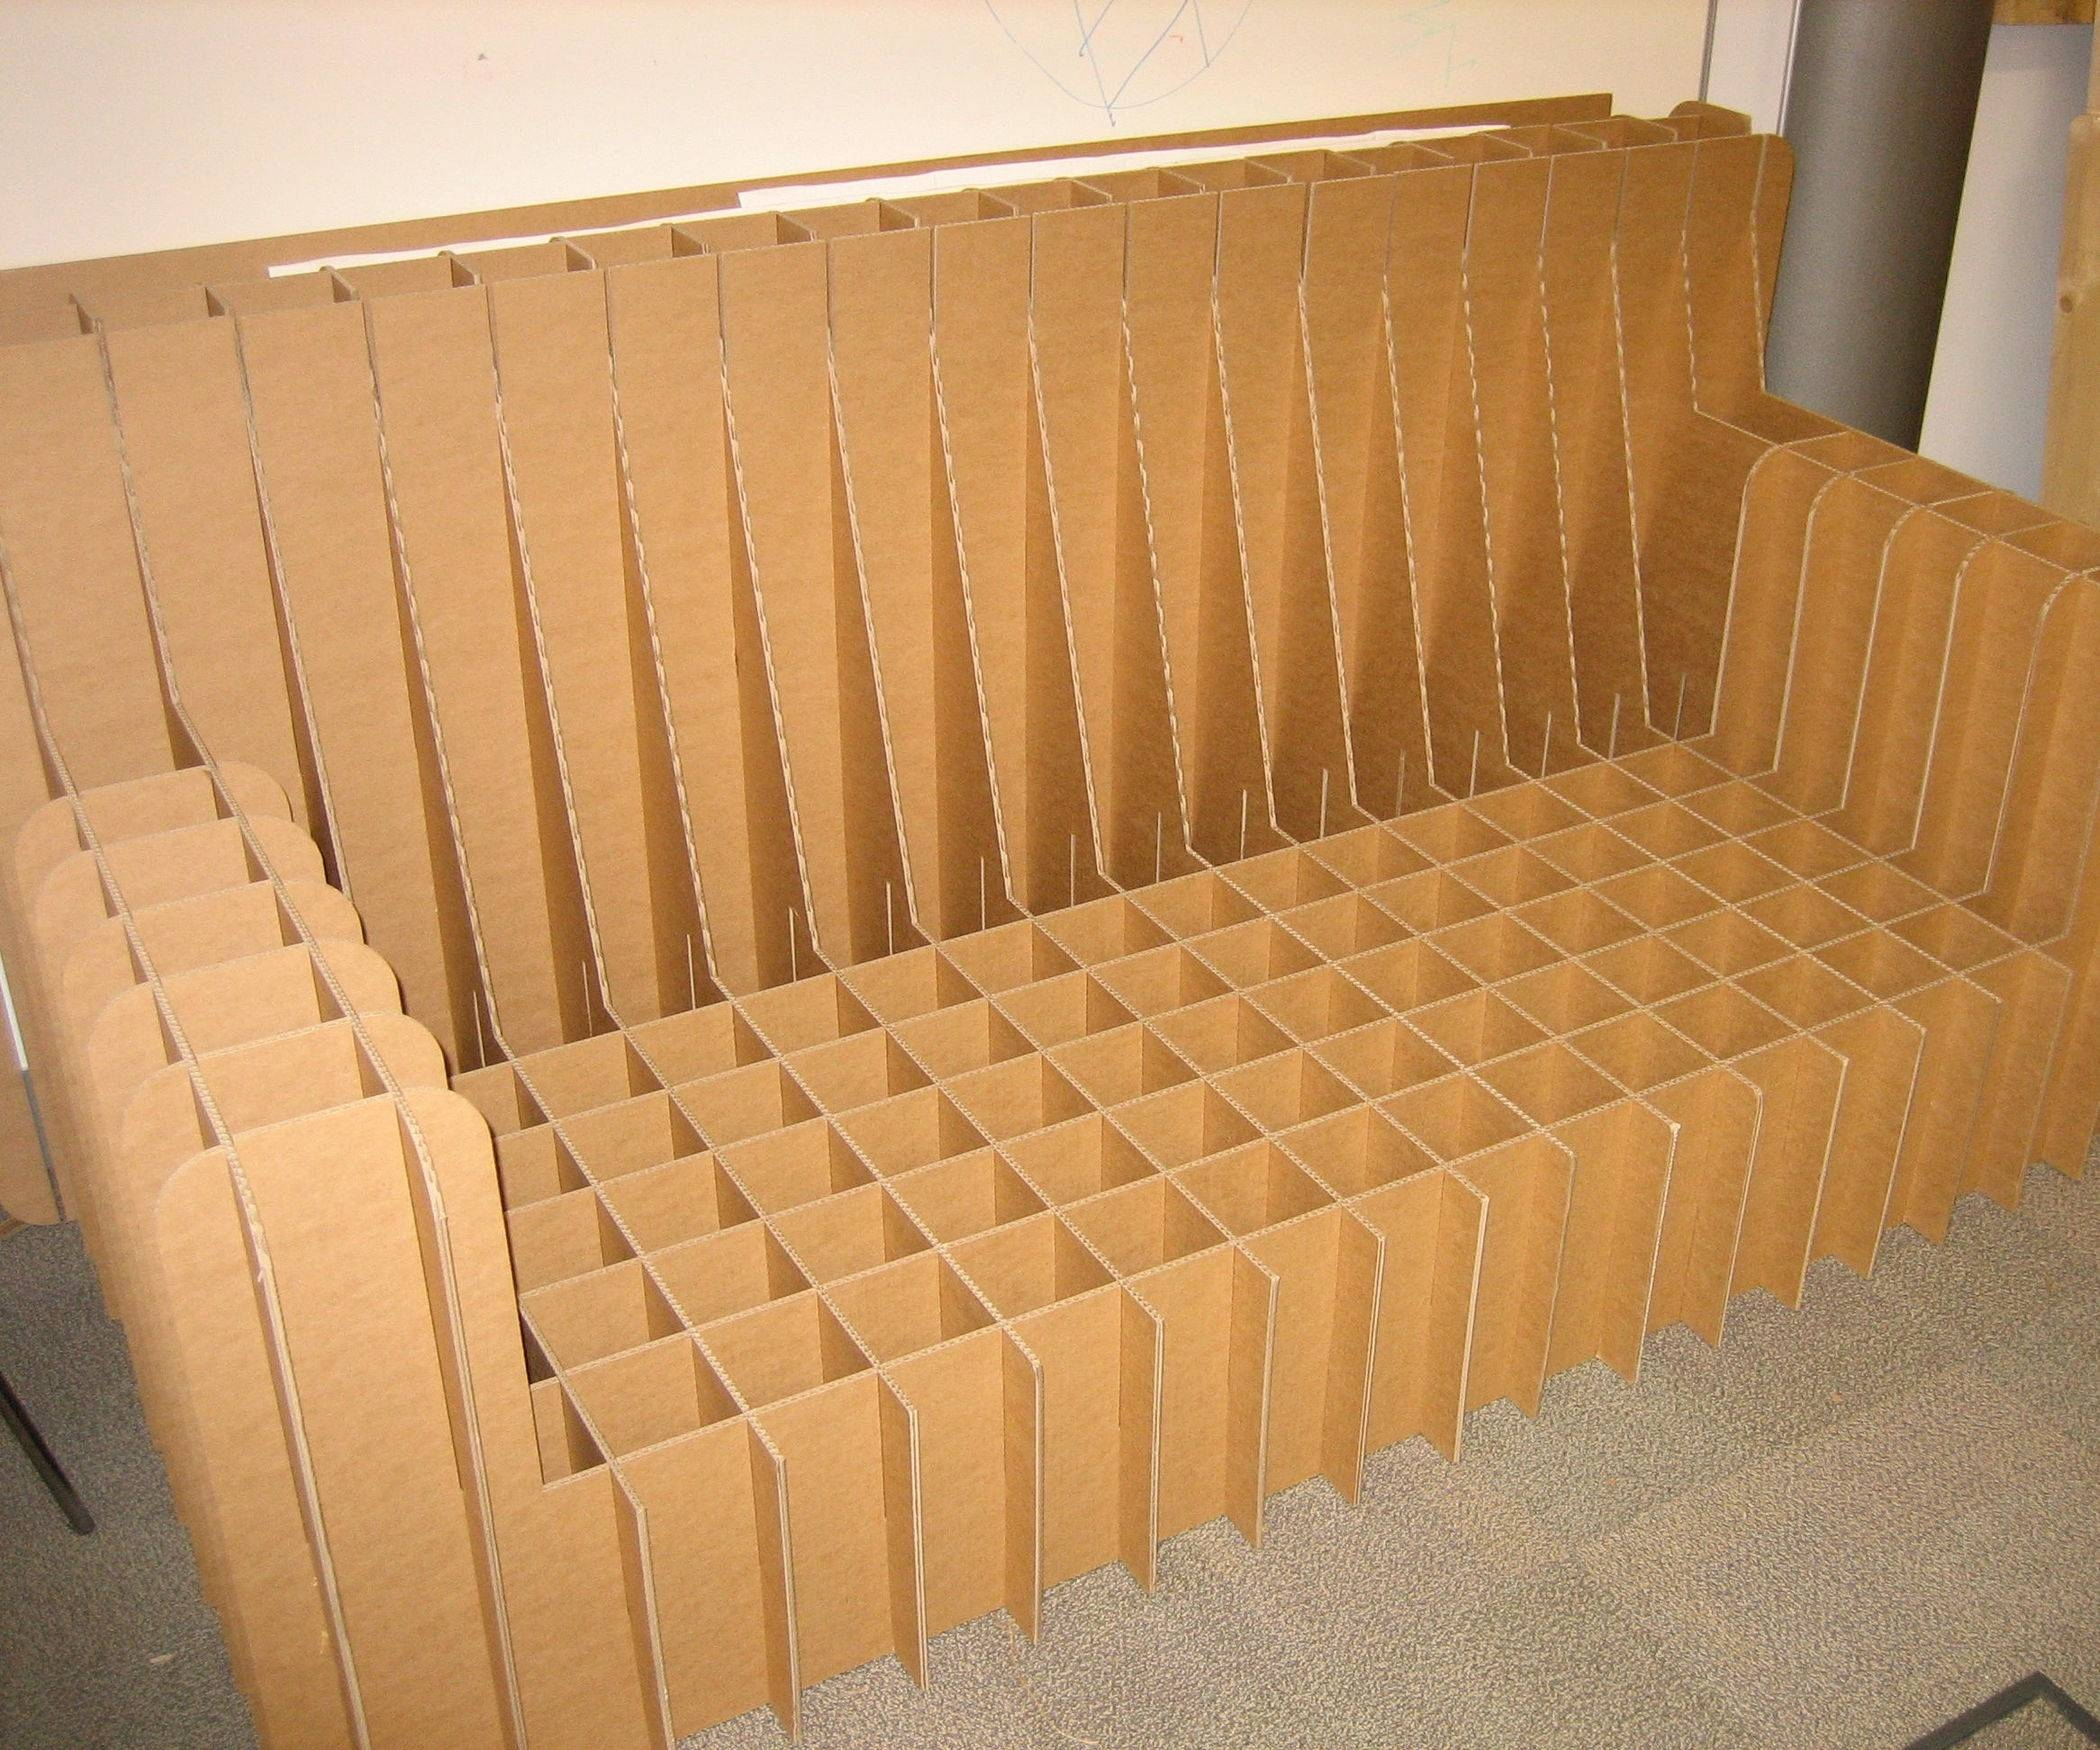 Cardboard Sofa: 5 Steps (With Pictures) inside Cardboard Sofas (Image 9 of 15)